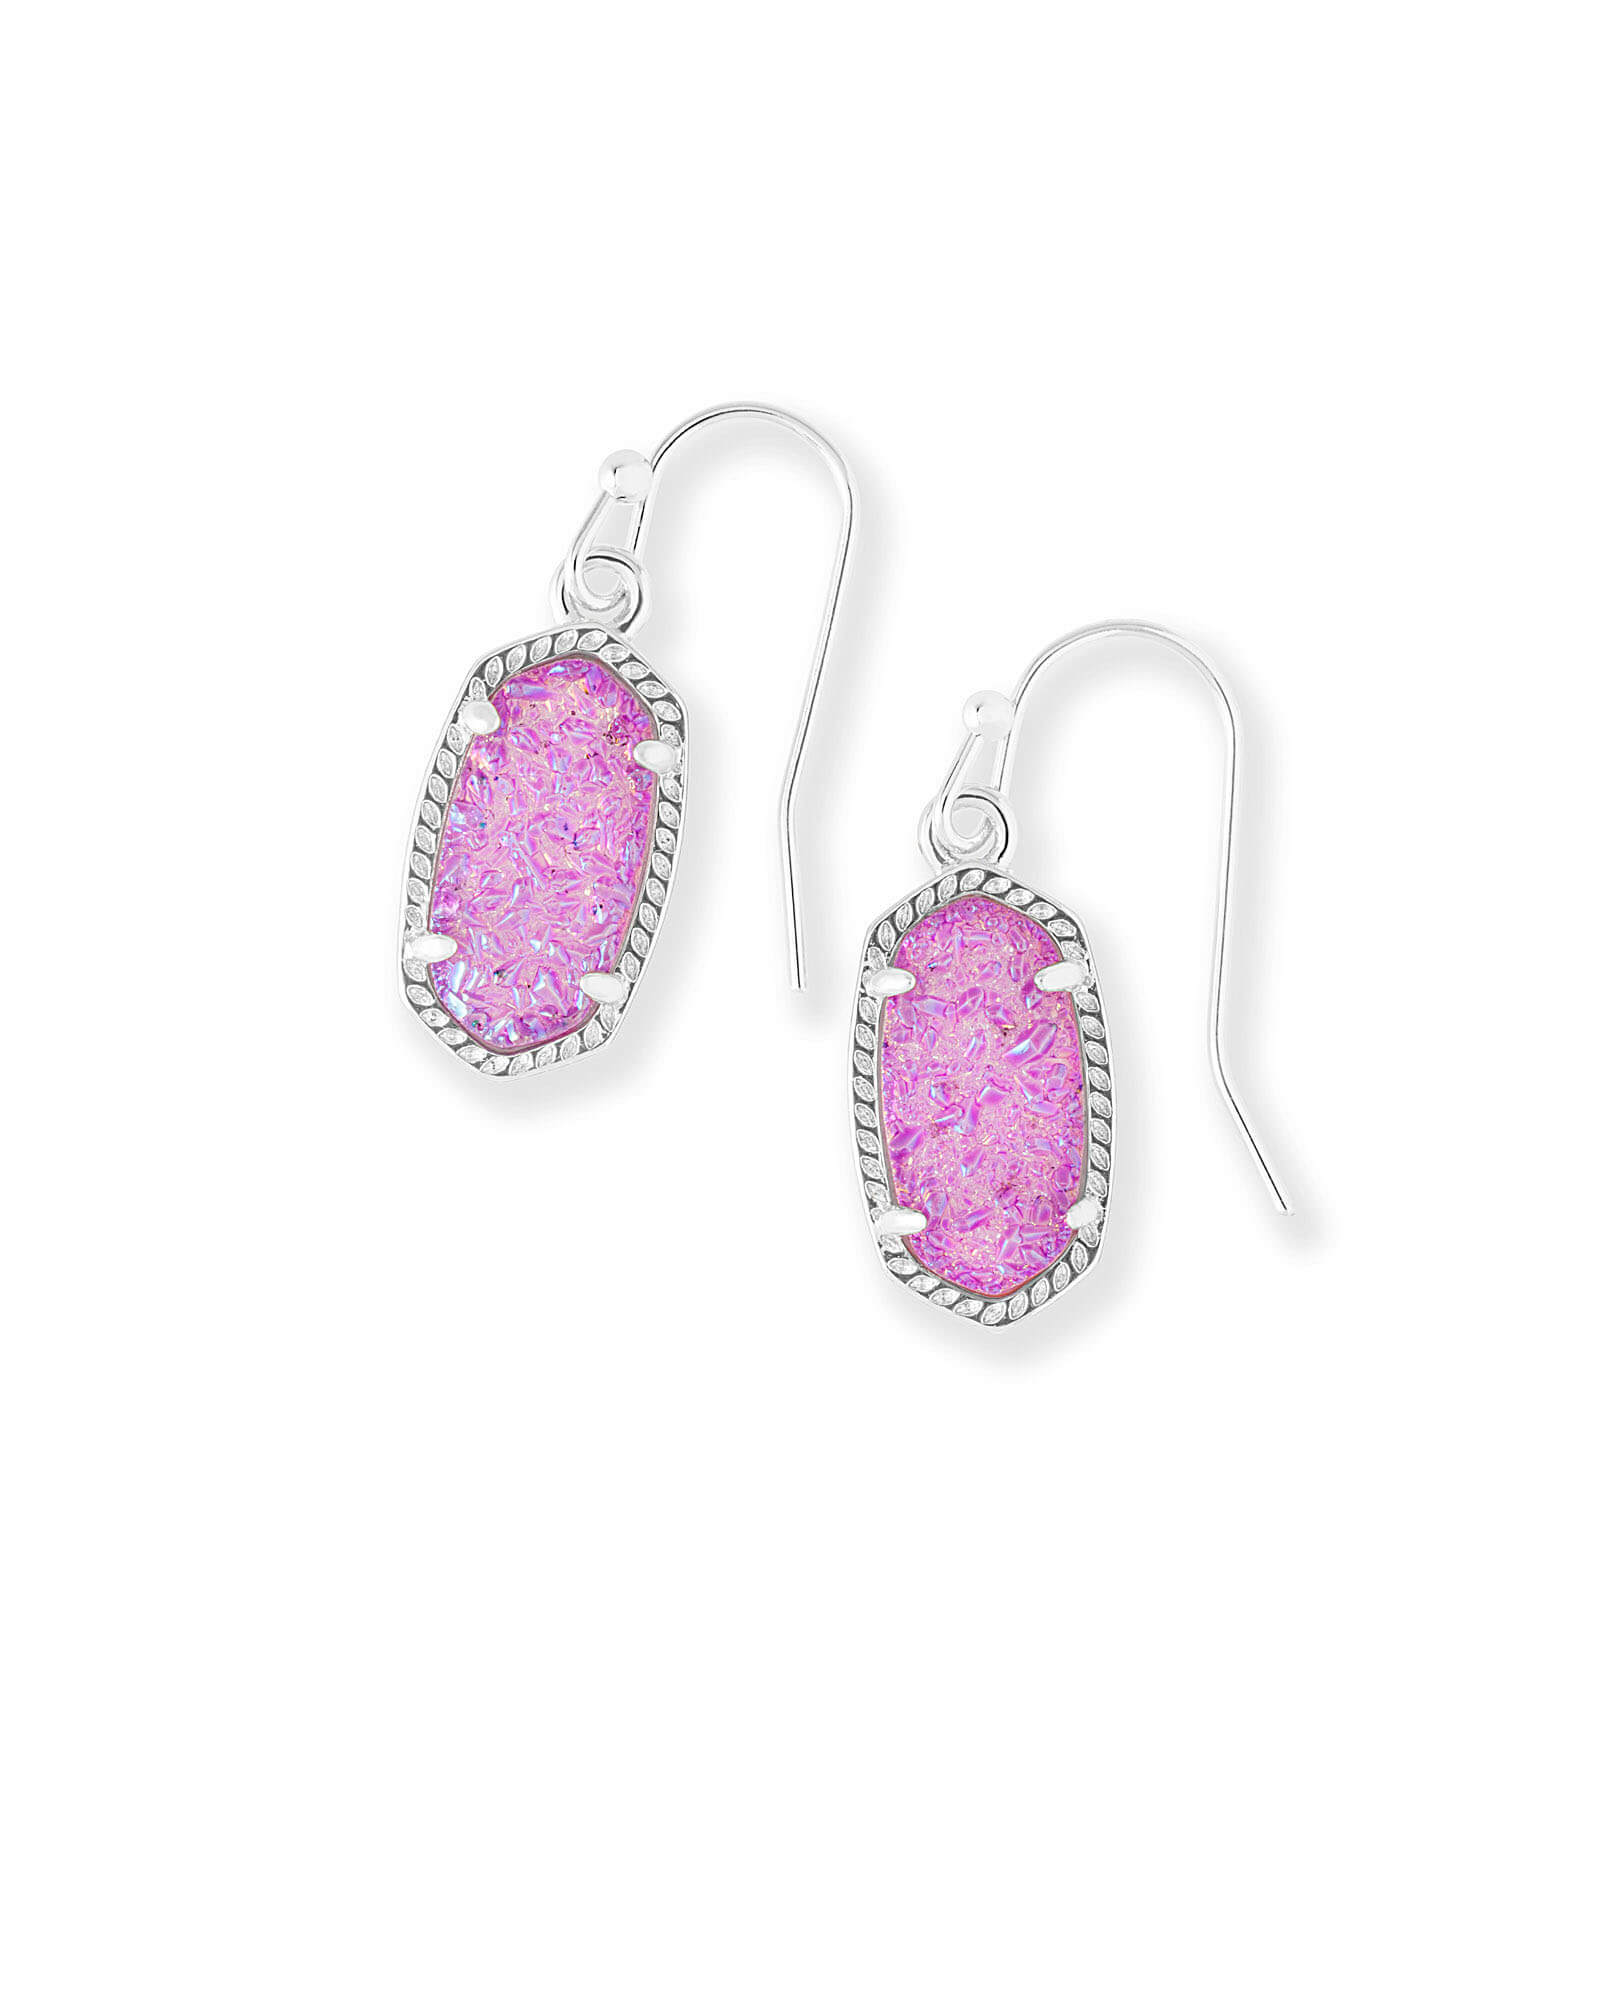 Lee Silver Drop Earrings in Violet Drusy